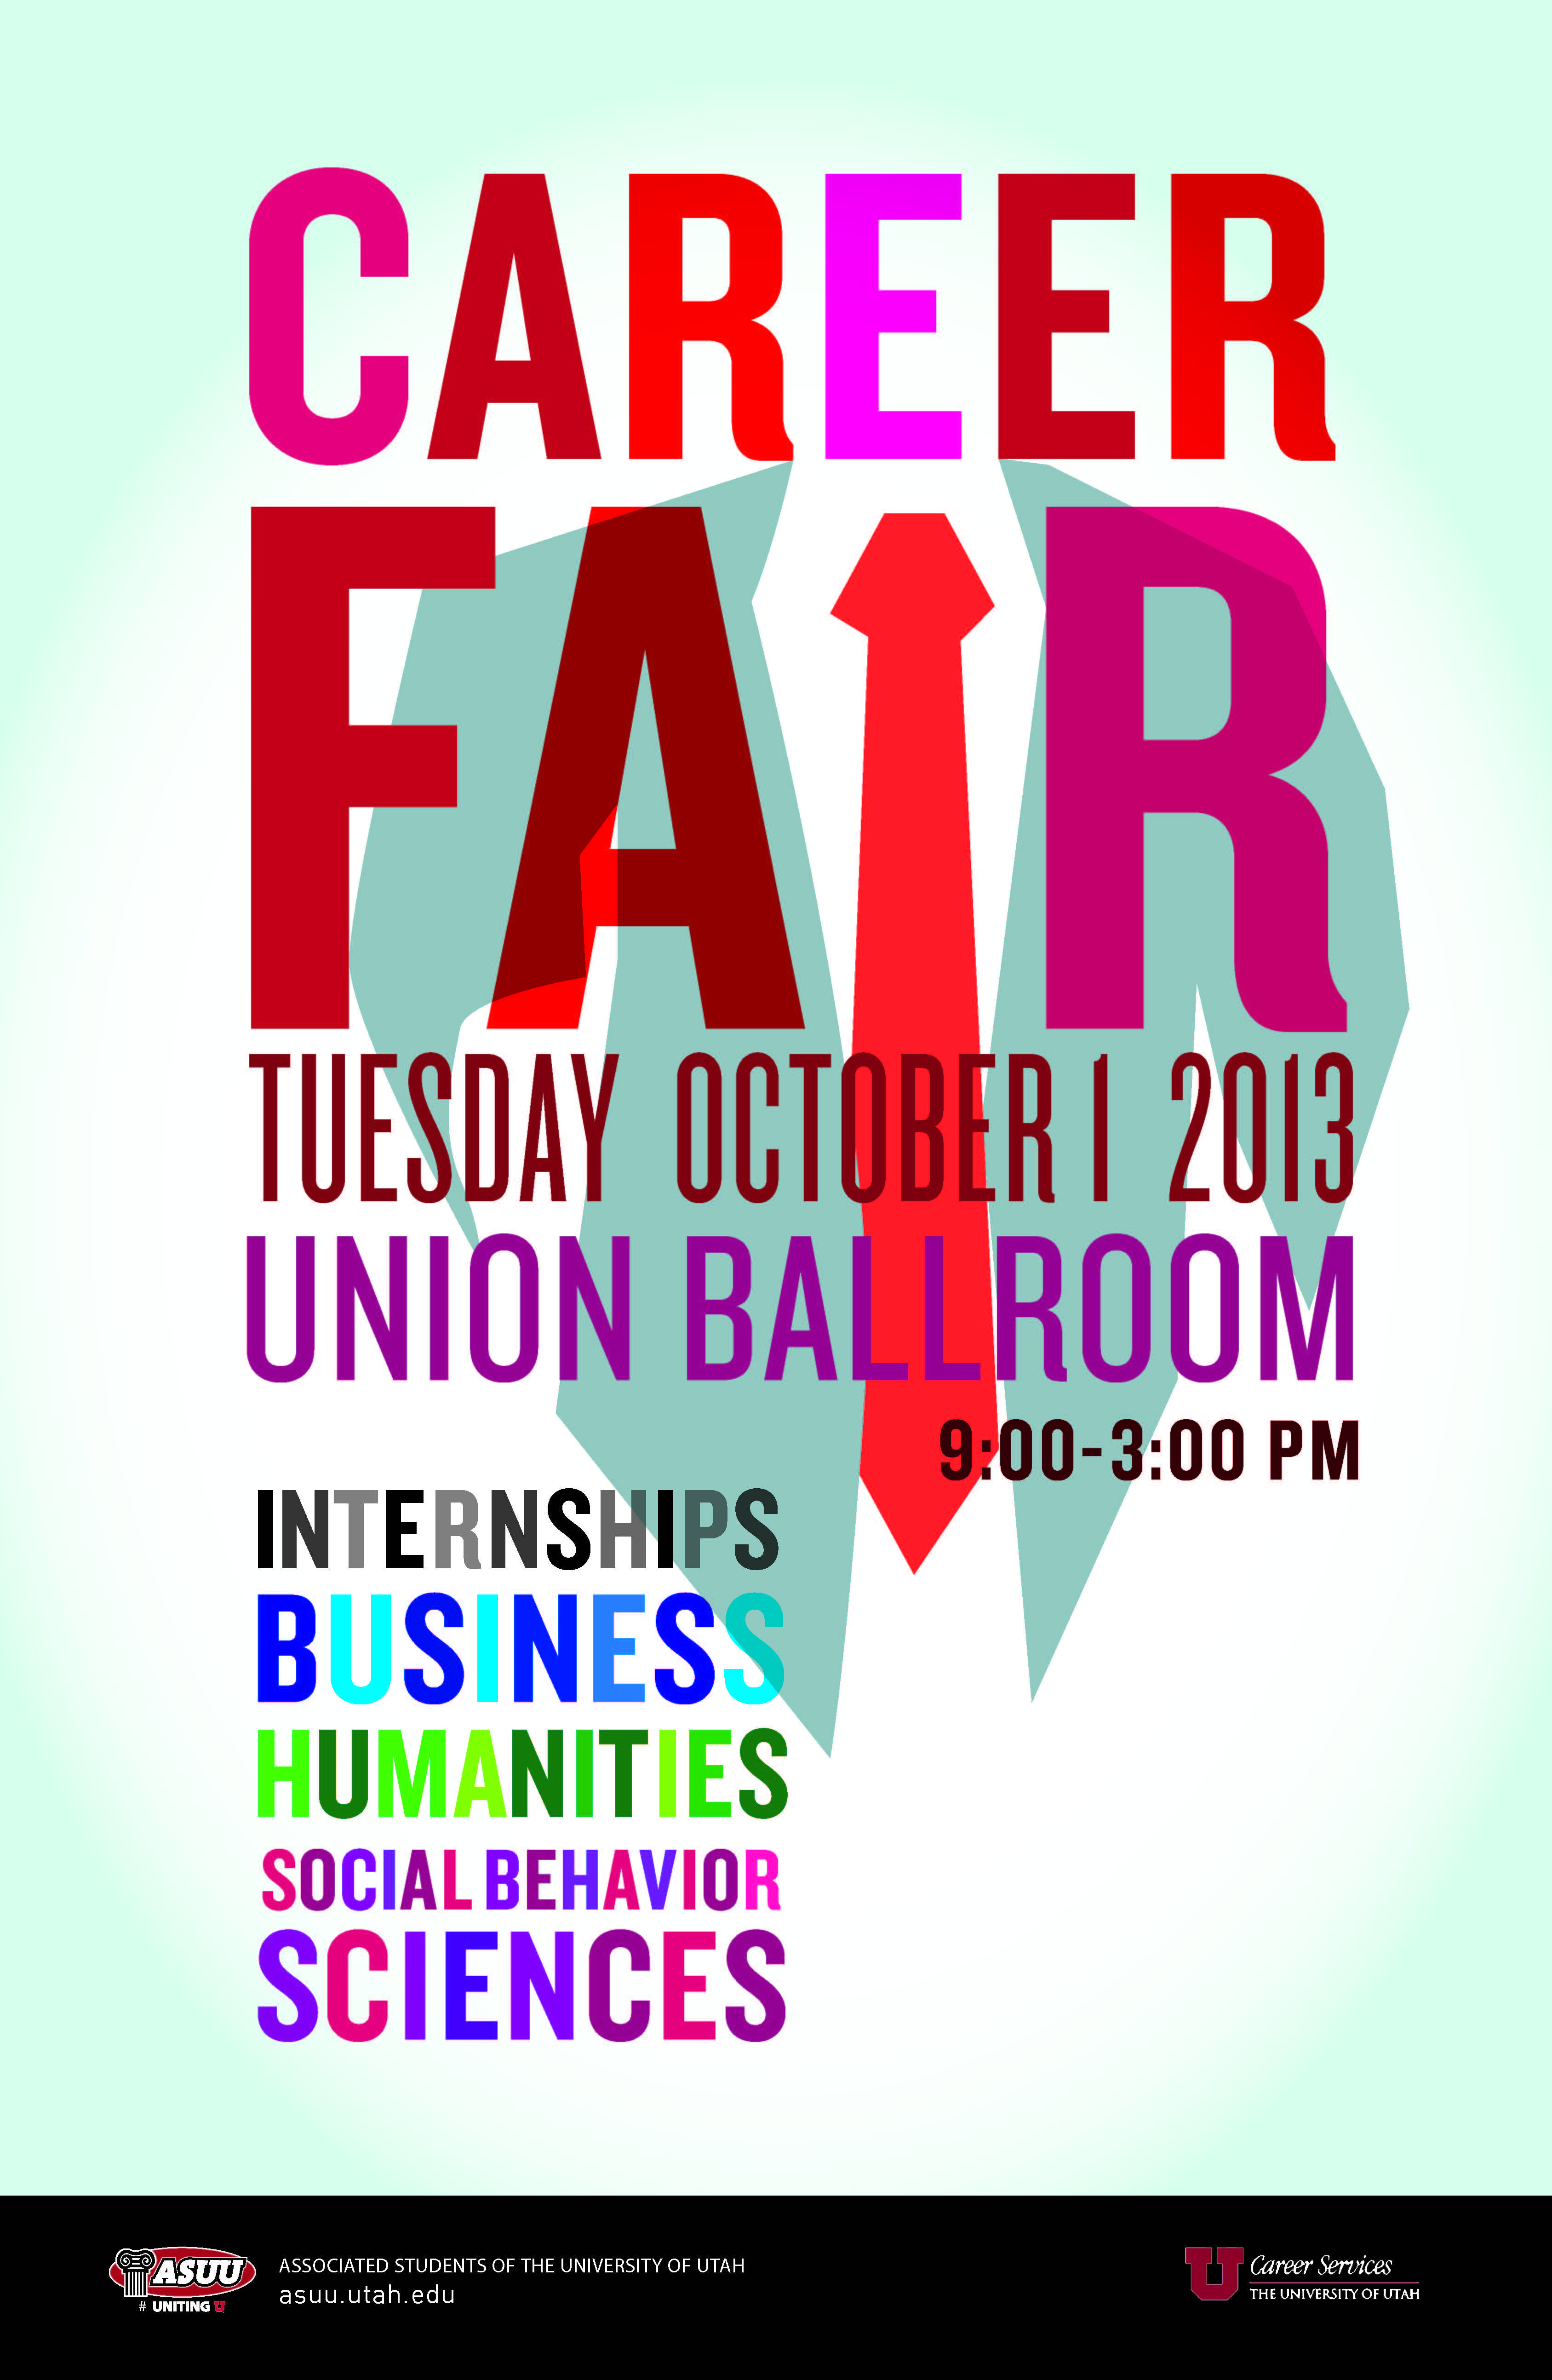 Pin By Rio Saito On Career Day Poster Flyer And Poster Design Job Fair Career Day